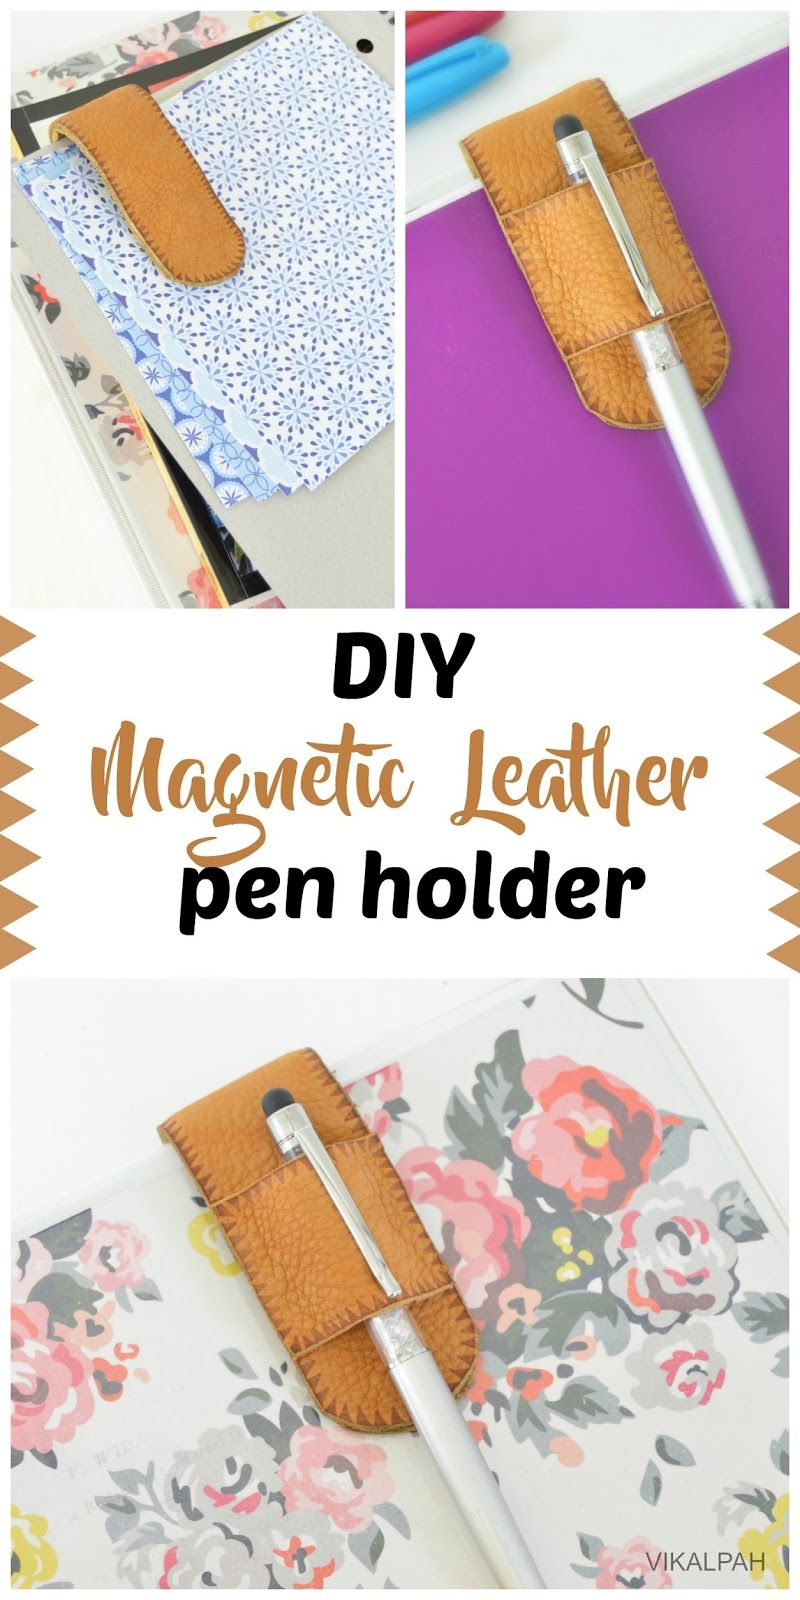 A Diy Blog About All Things Crafty Which Includes Simple Crafts Gift Wrapping Ideas Jewelry Making Diys Furnitu Pen Holder Diy Leather Diy Diy Leather Stamp